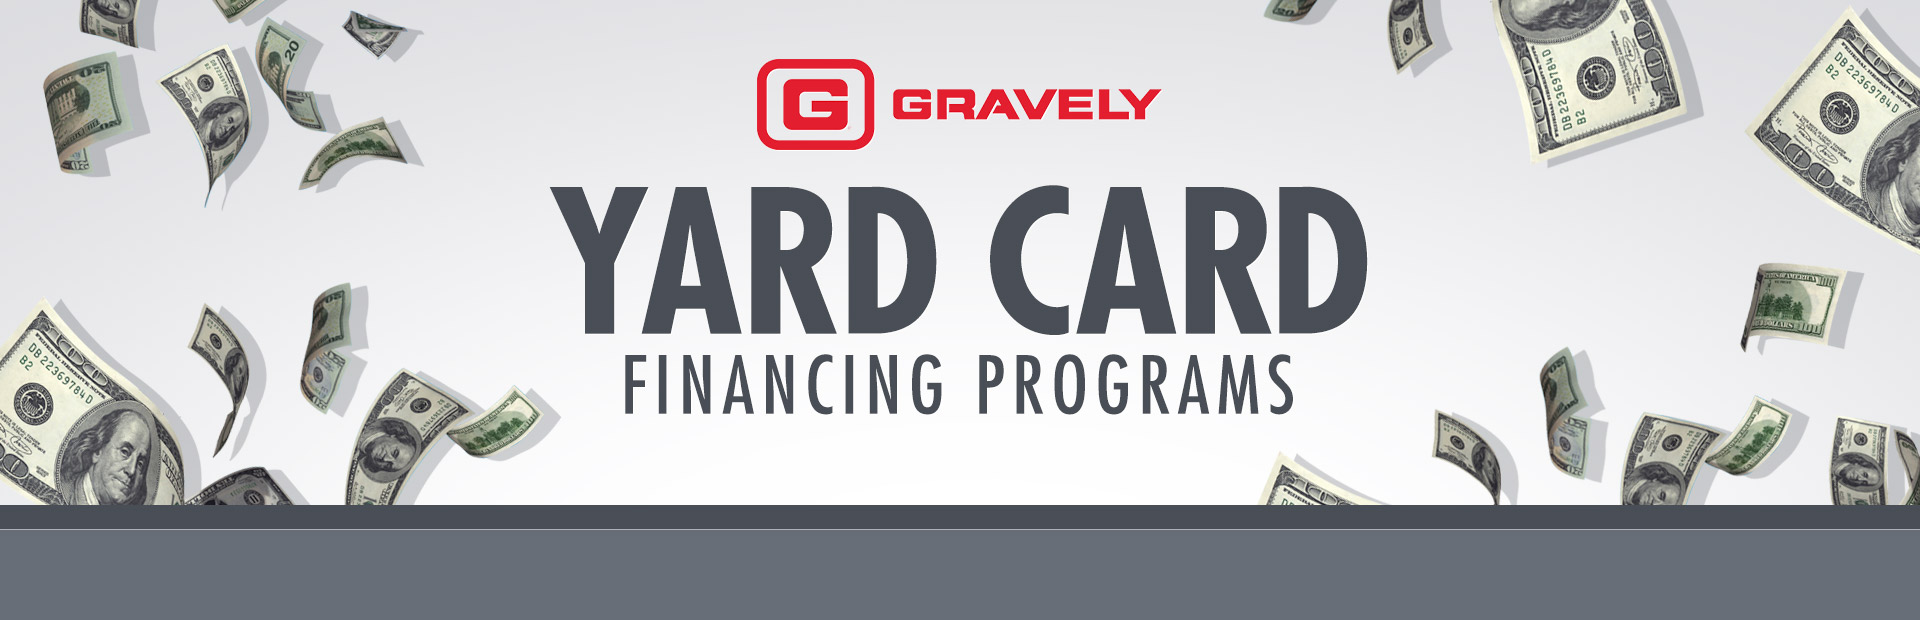 Gravely: Gravely – Yard Card Financing Programs